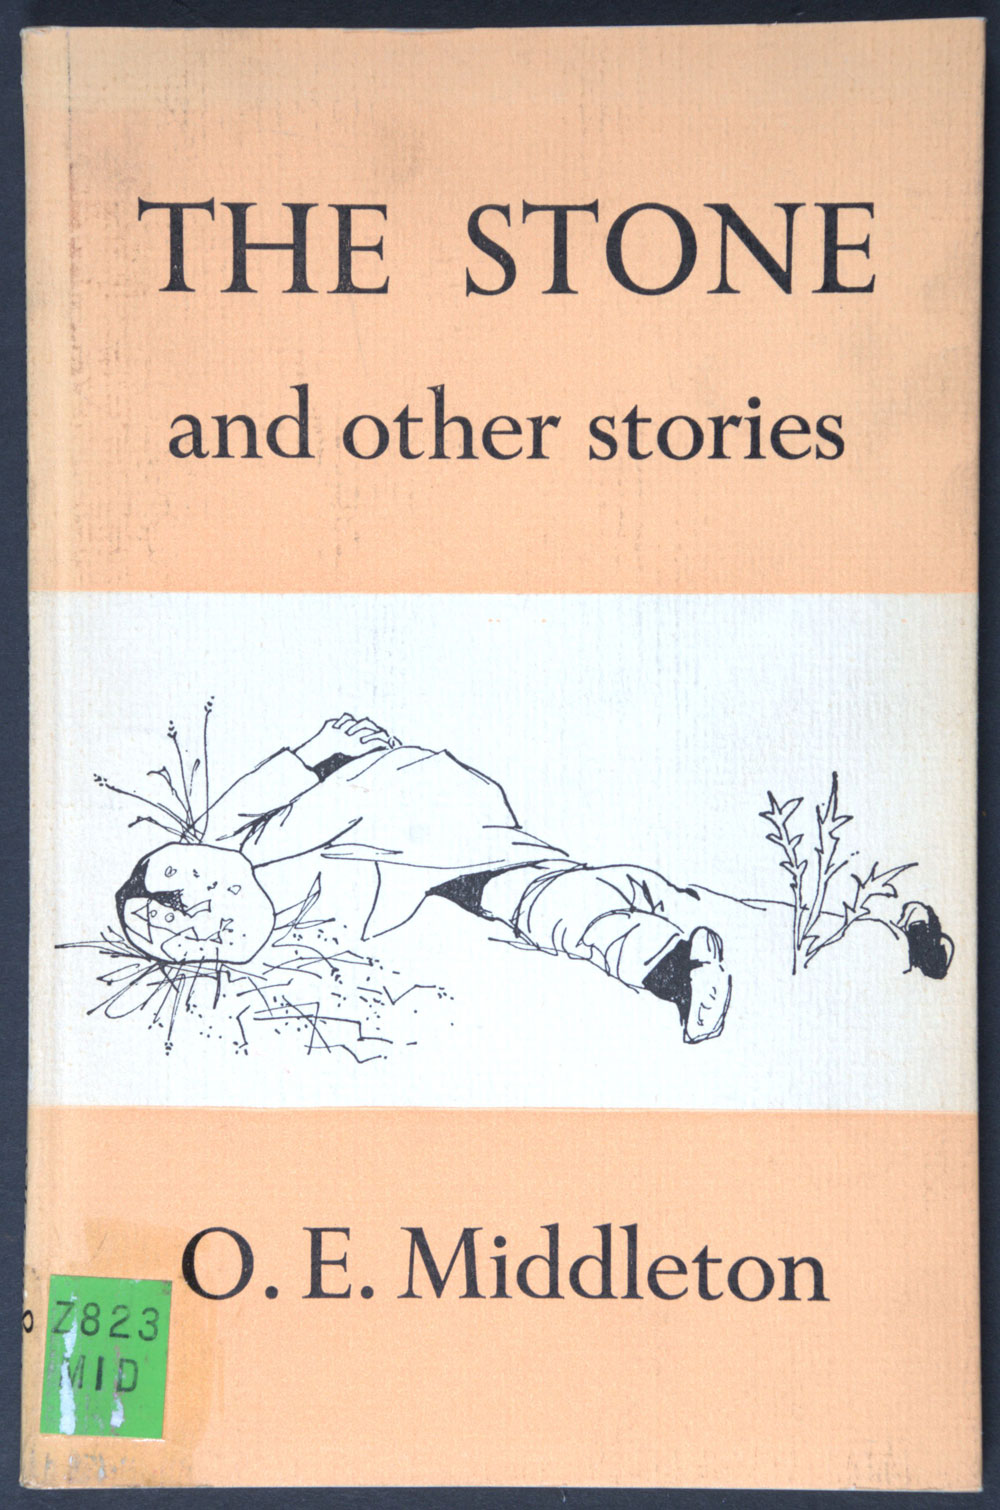 O.E. Middleton. <em>The stone and other stories.</em> Auckland: Pilgrim Press, 1959.